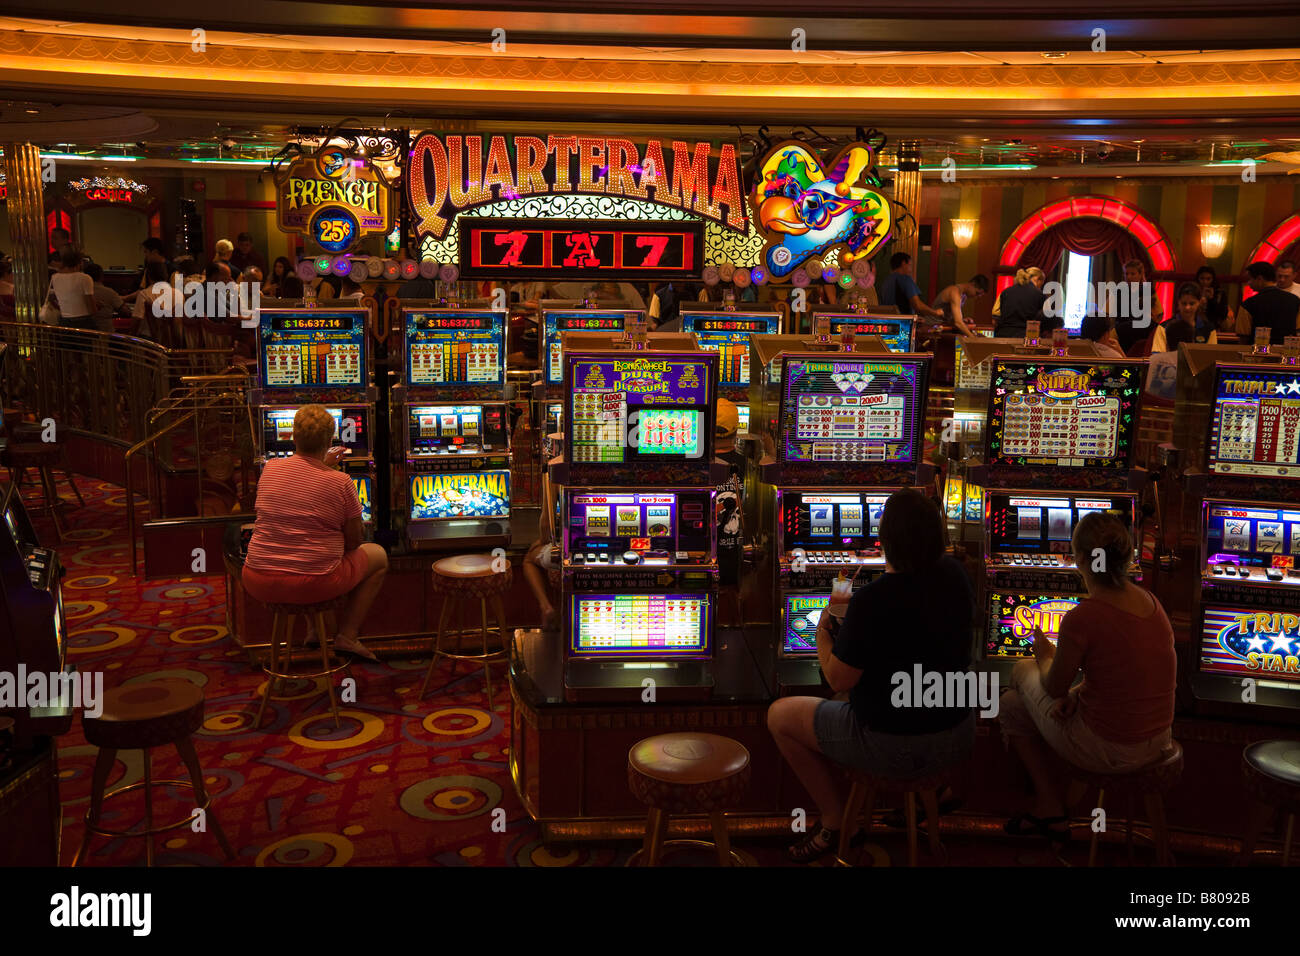 People playing slot machines in casino on Royal Caribbean Navigator of the Seas cruise ship - Stock Image